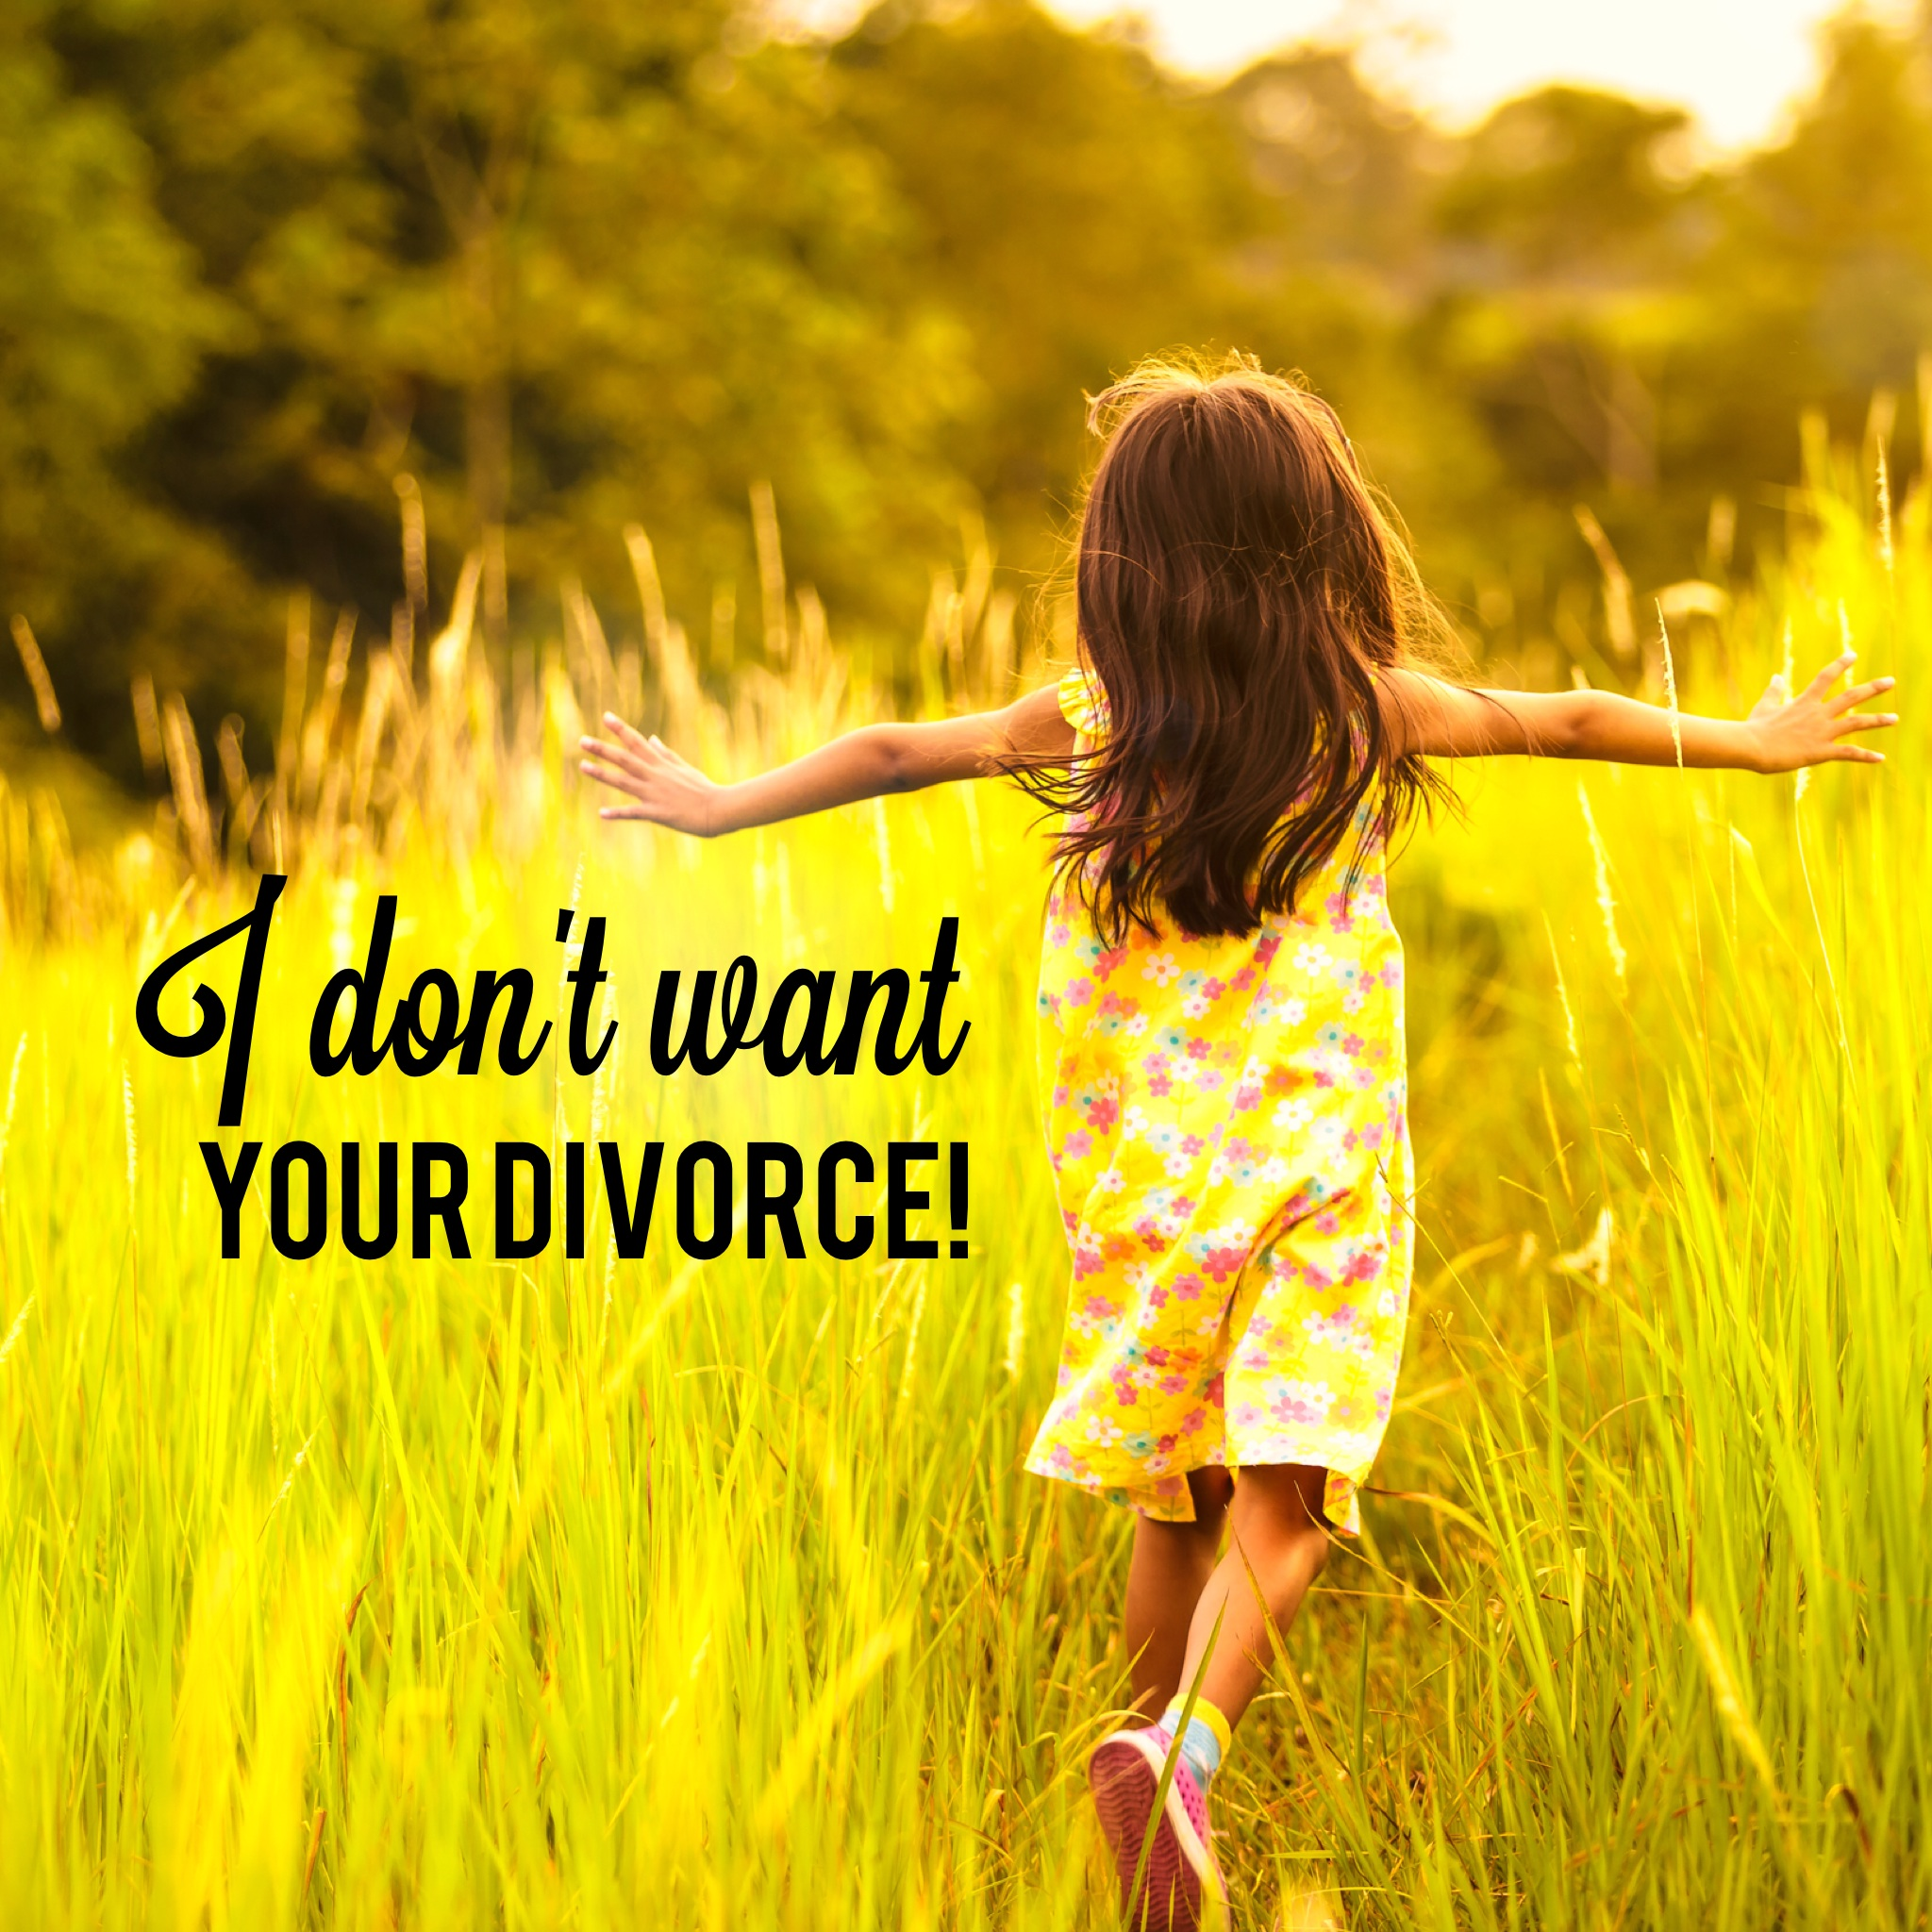 I Might Be Your Daughter, But I Don't Want Your Divorce